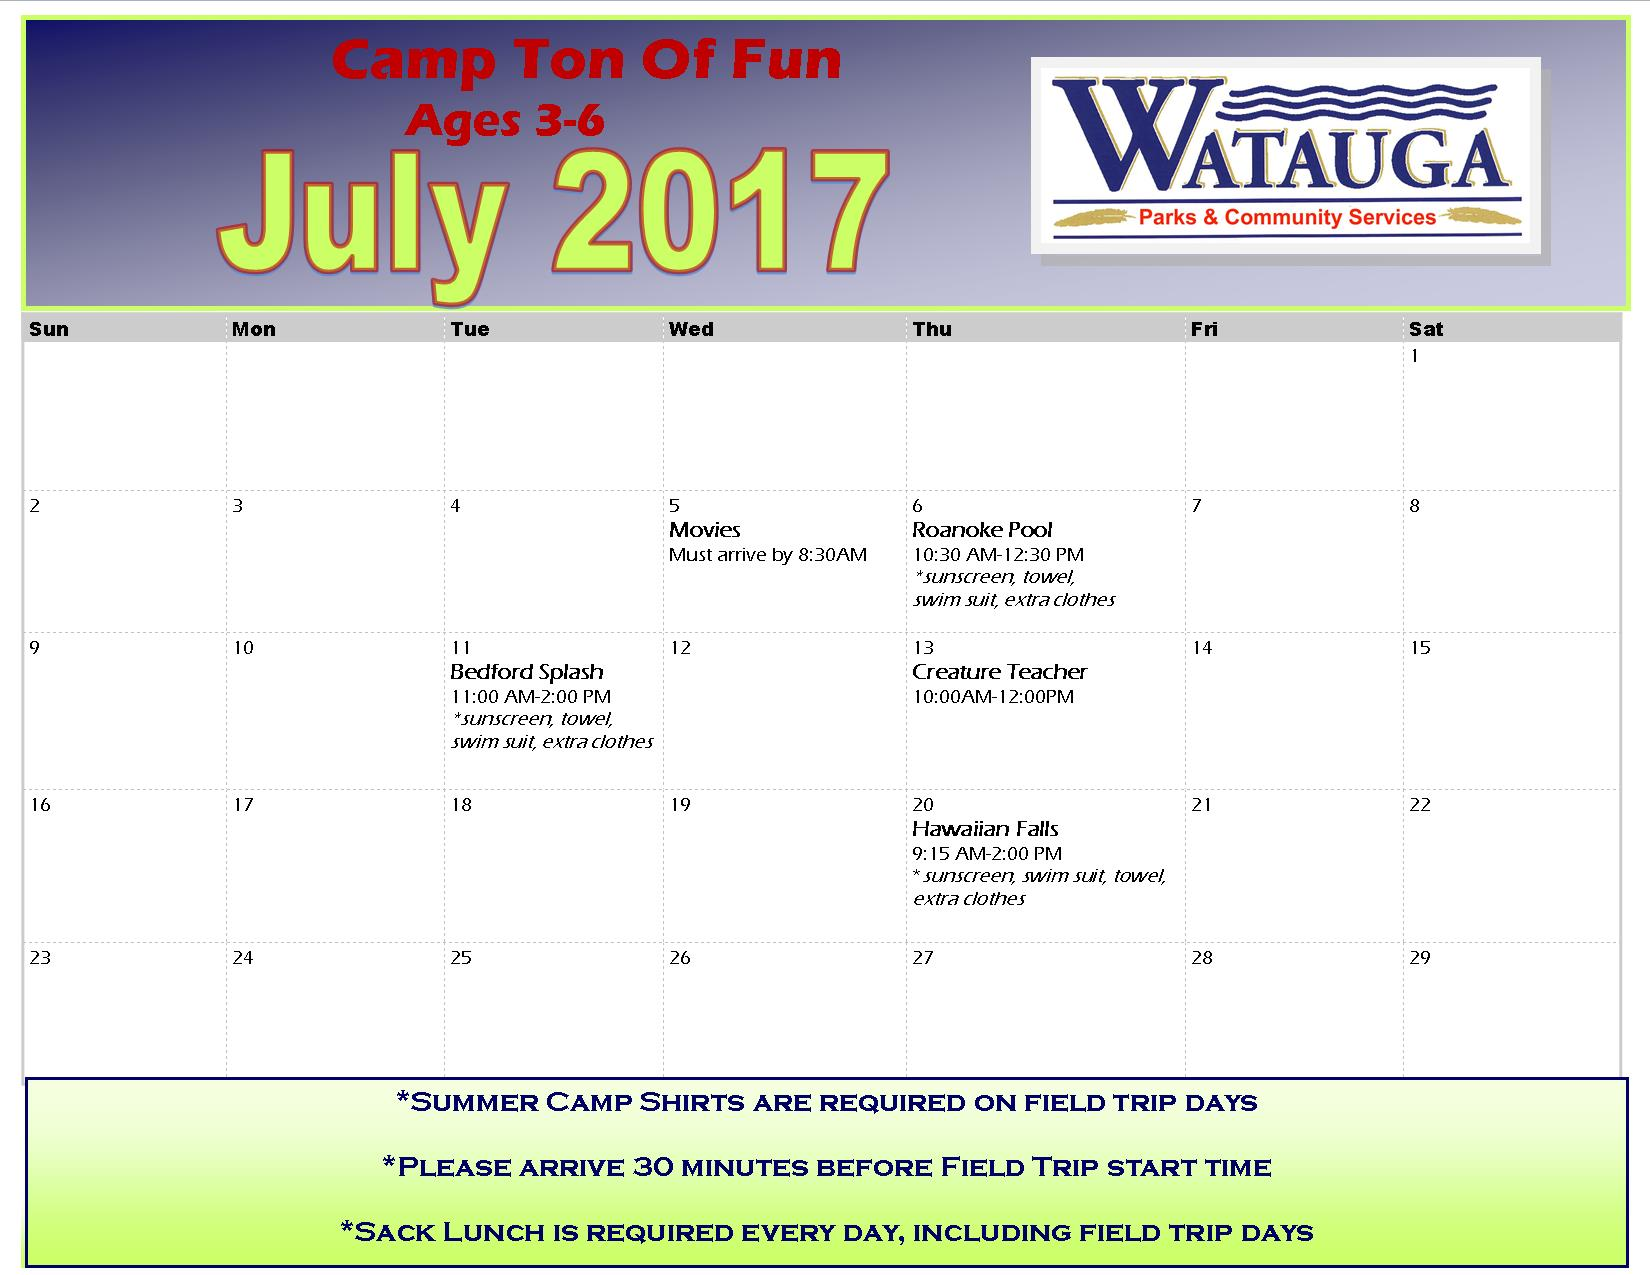 July 2017 Camp Ton of Fun Field Trips